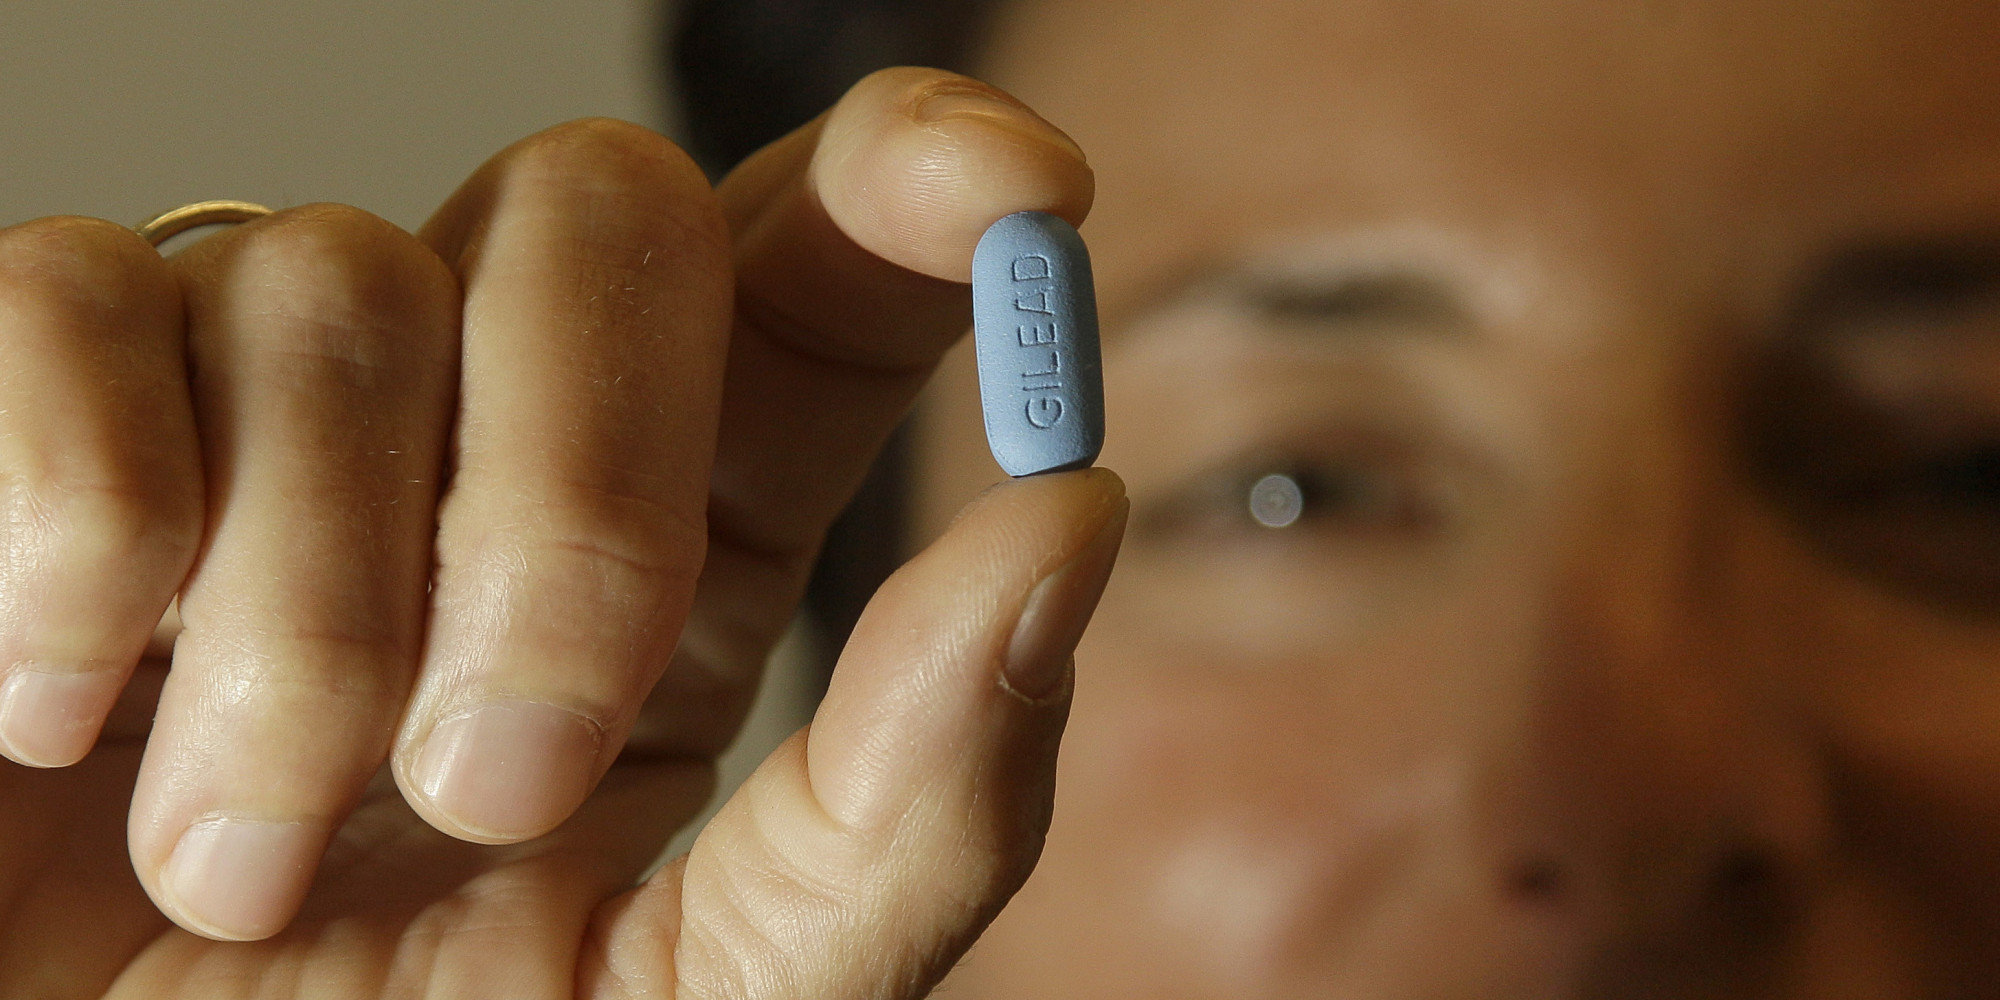 cura anti HIV truvada, pillola farmaco preventivo per aids